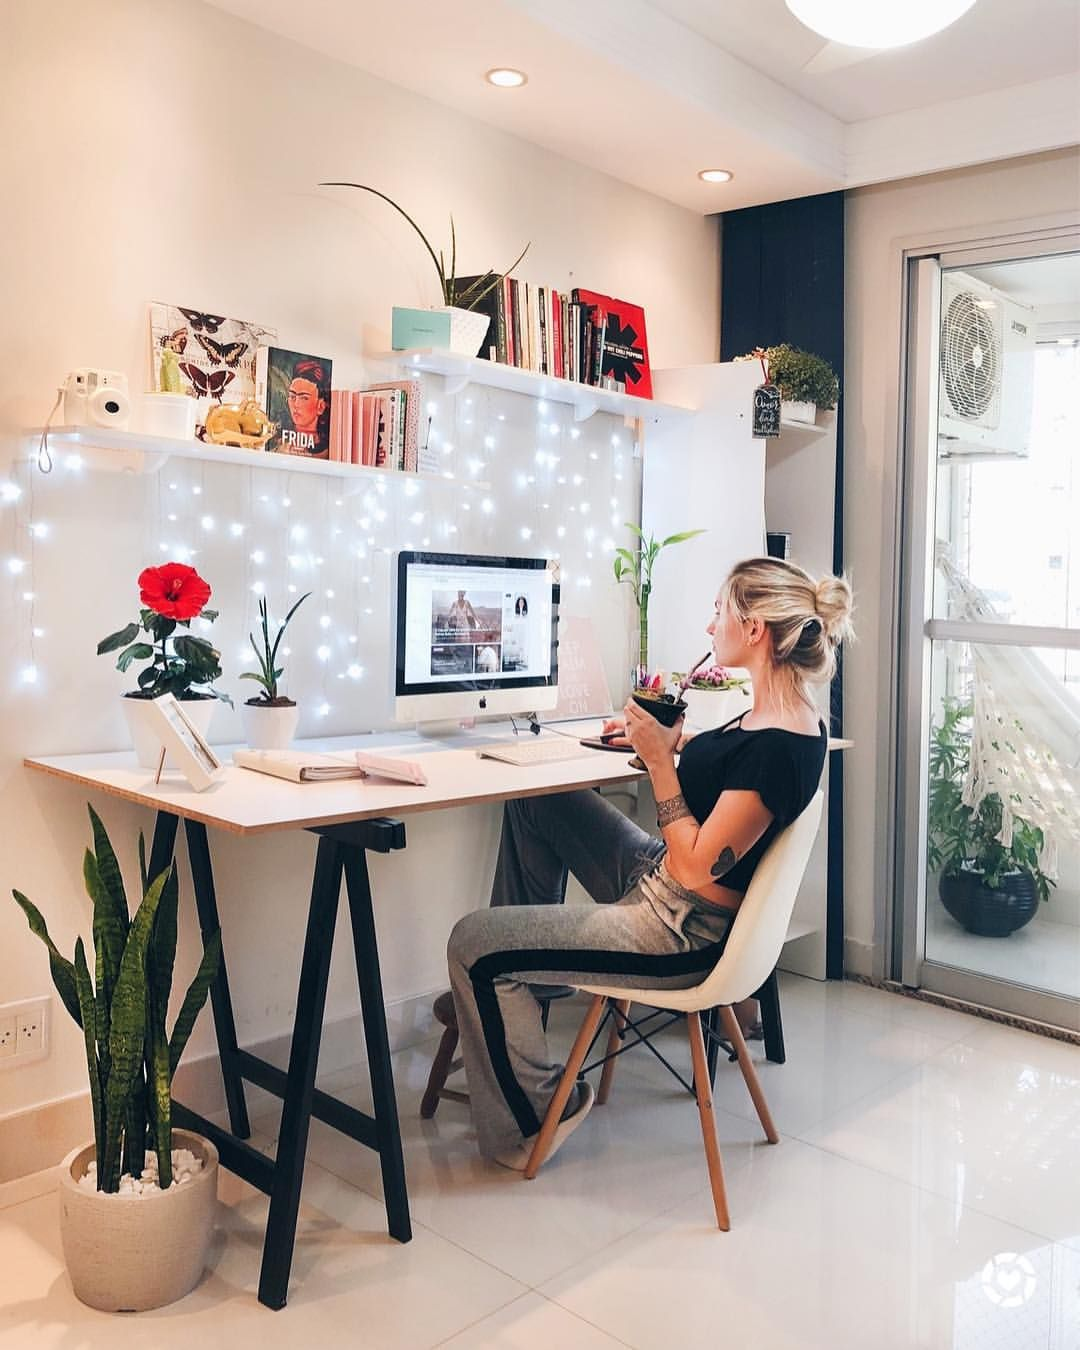 Cozy Homeoffice Decor: A Great Office Design. I Could Chill Here. From Brazil. In